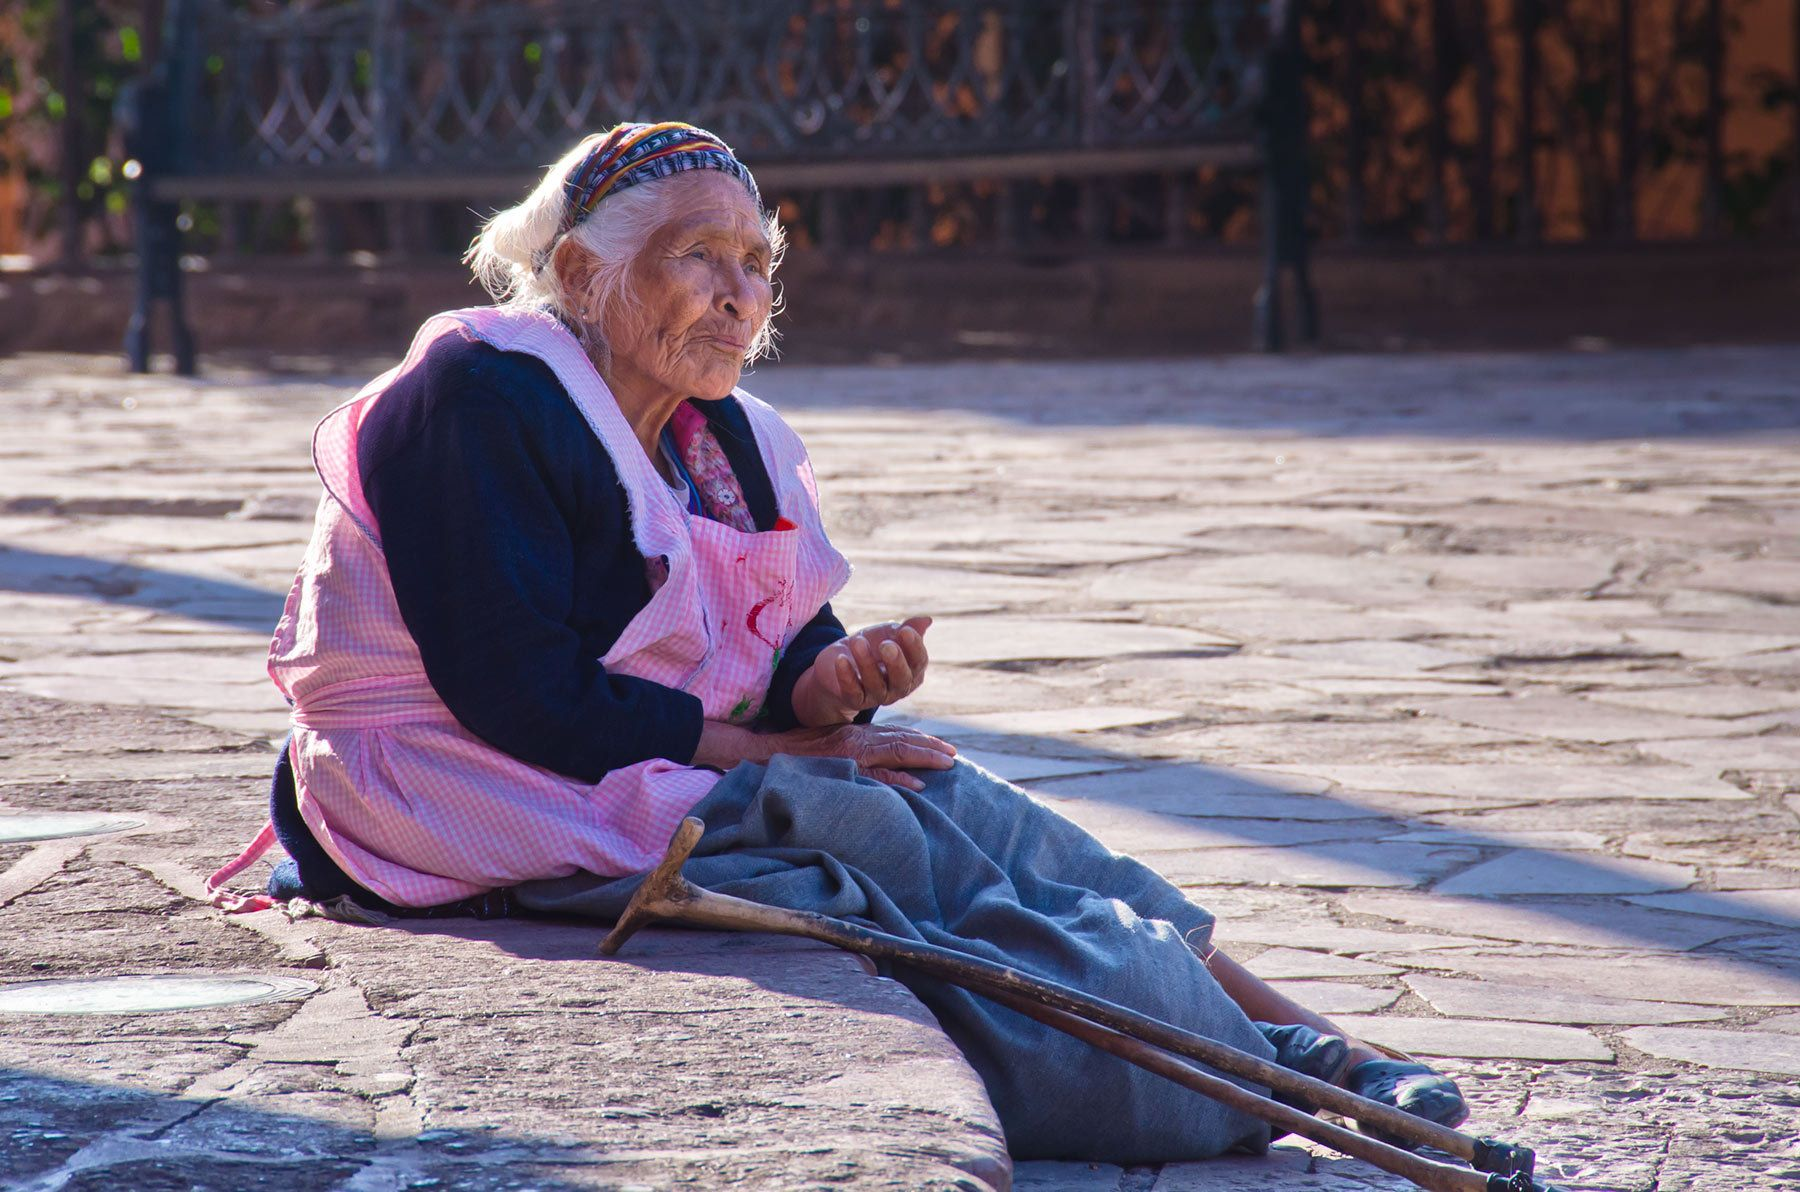 Old Woman begging, St. Miguel de Allende, Mexico